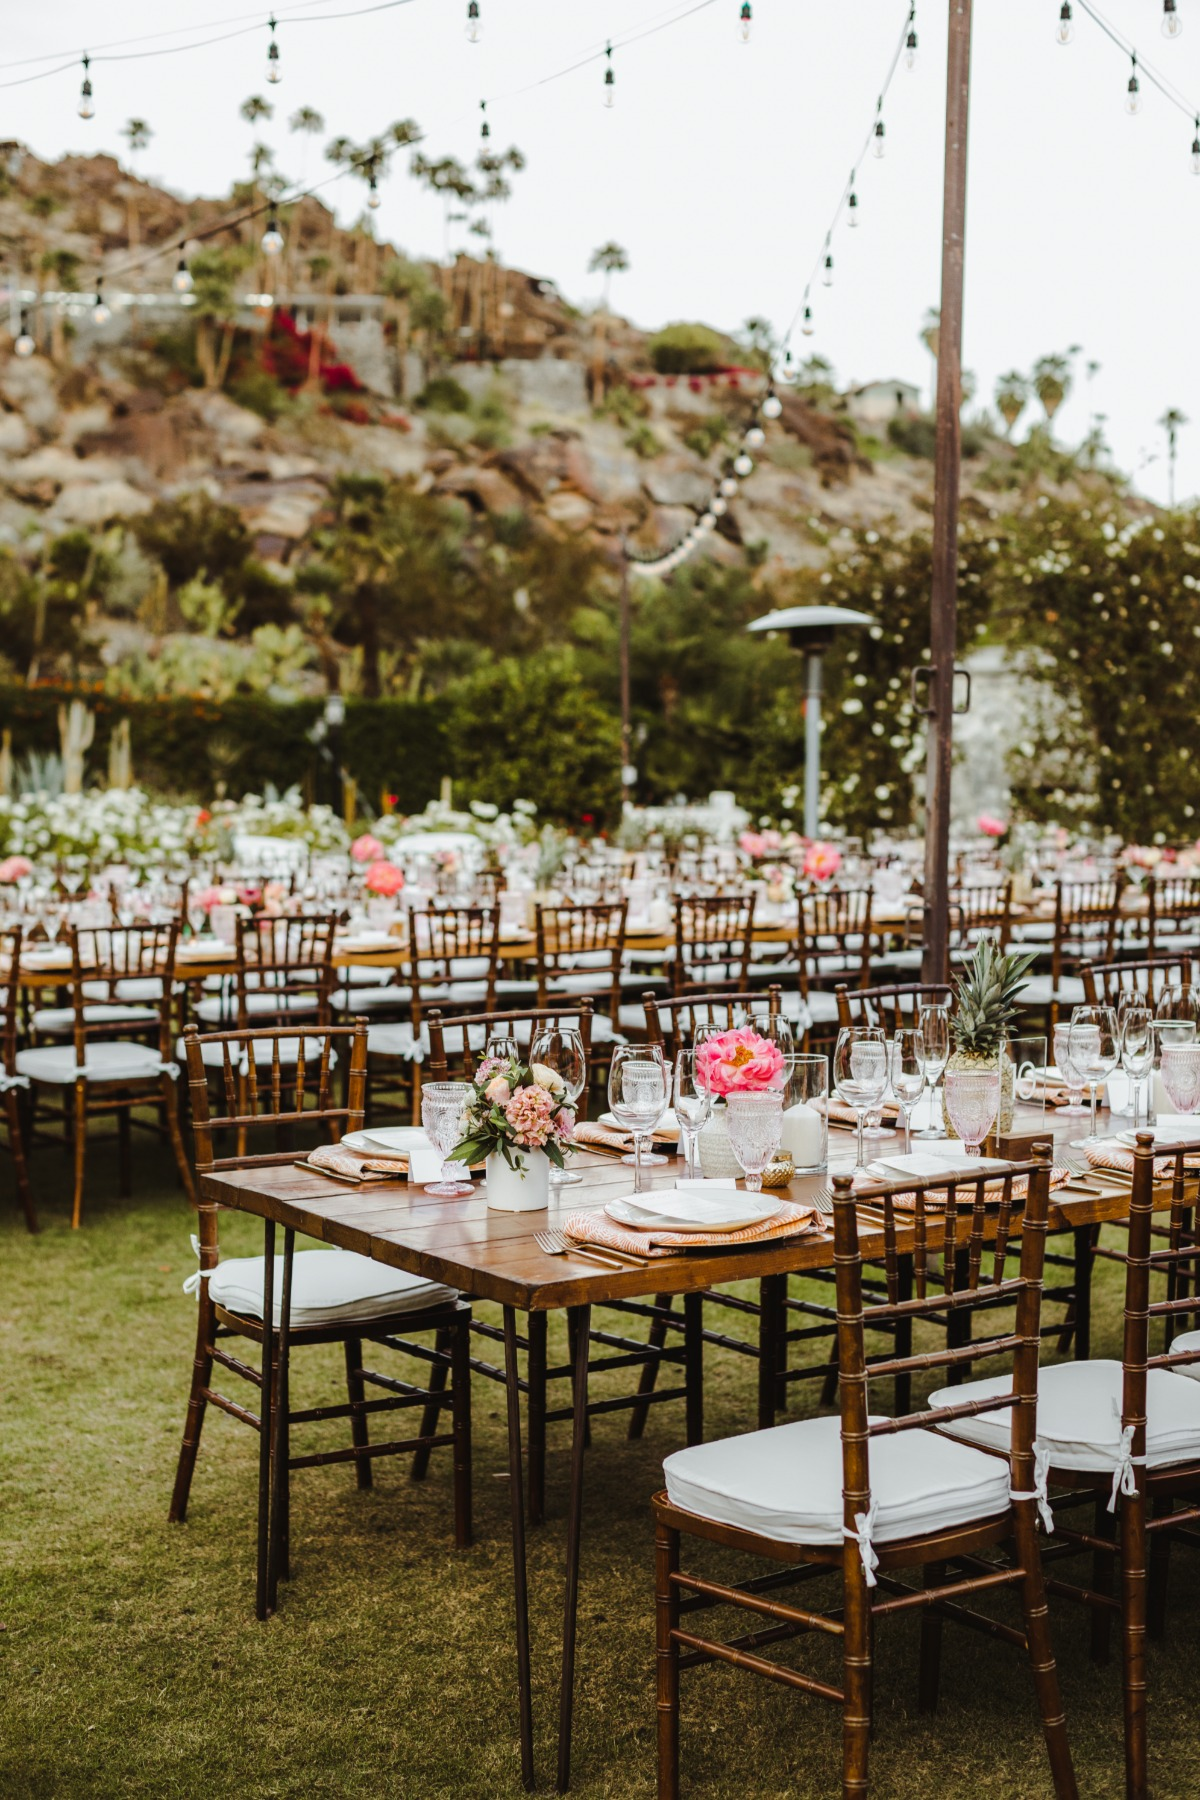 Desert chic Palm Springs wedding